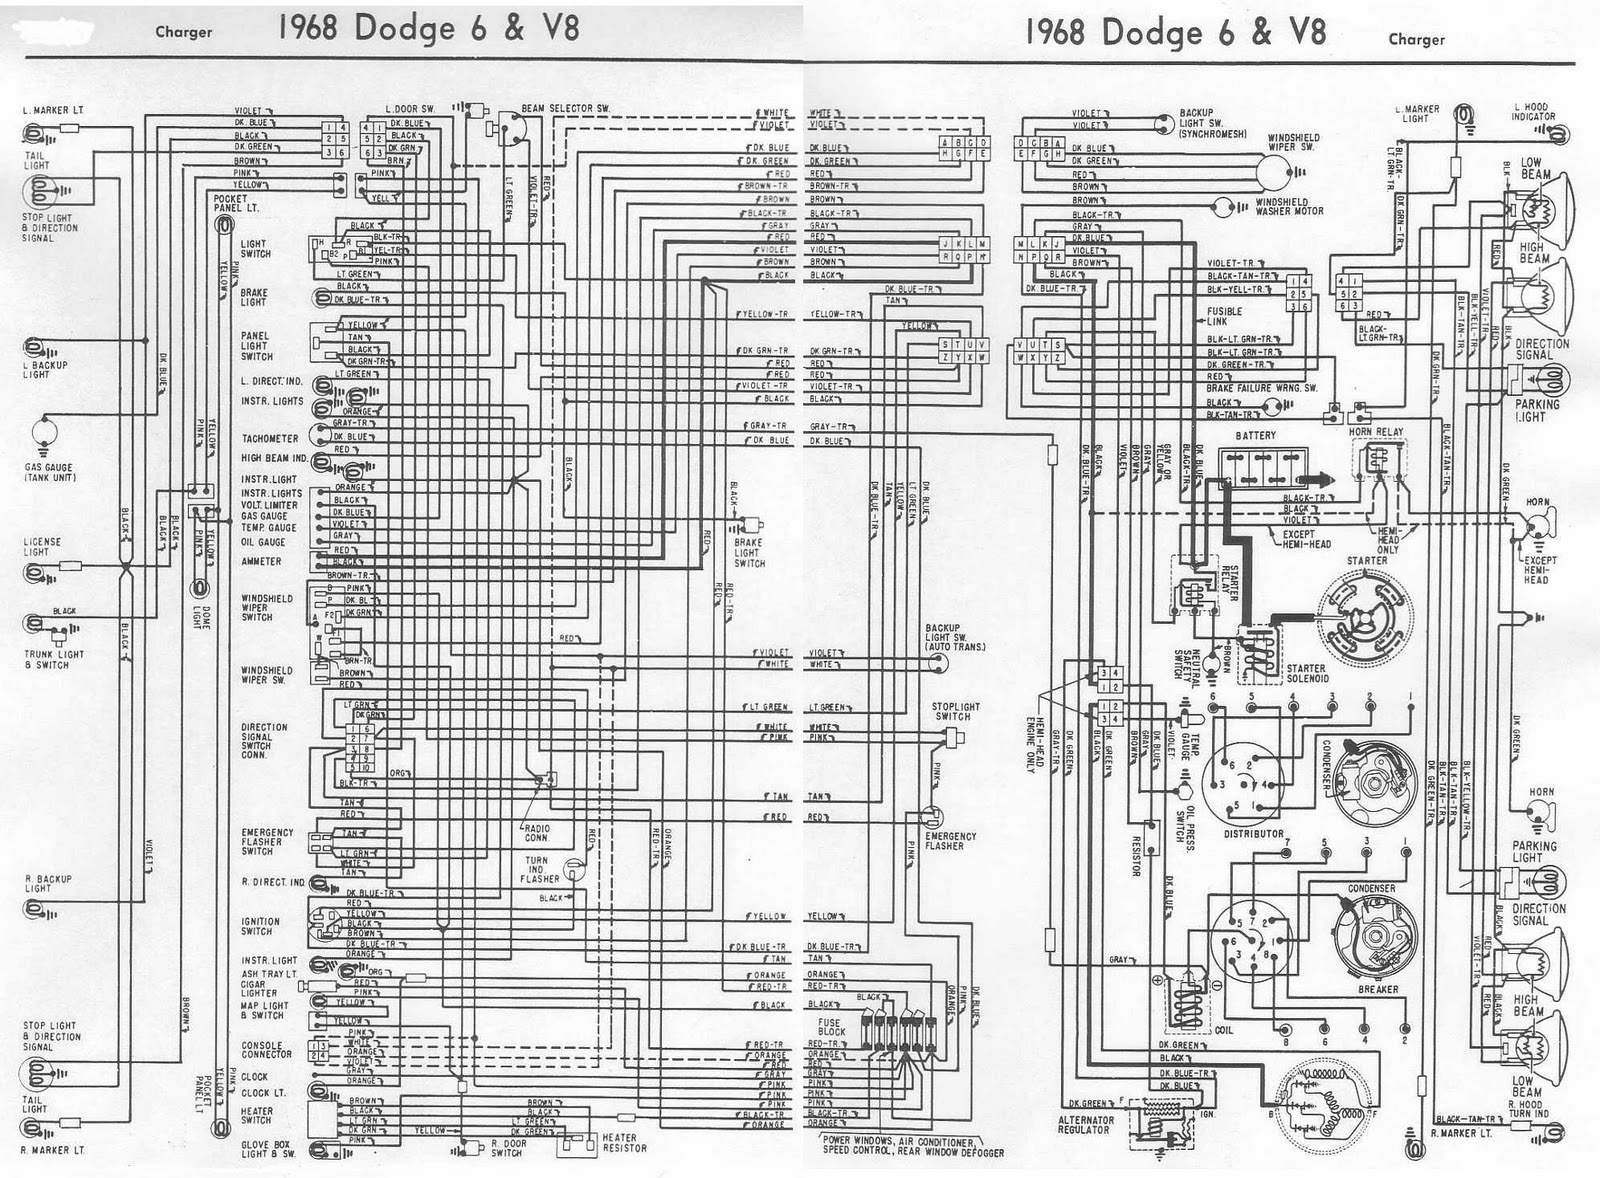 m880 wiring diagram wiring diagram dodge charger wiring wiring ... on sensor wiring diagram, alarm wiring diagram, electrical wiring diagram, radio wiring diagram, car audio wiring diagram, a/c wiring diagram, electric window switch, electric window assembly, abs wiring diagram, transmission wiring diagram, battery wiring diagram, door wiring diagram, electric window repair, fan wiring diagram, lights wiring diagram, locks wiring diagram, fuse wiring diagram, motor wiring diagram, throttle body wiring diagram, heater wiring diagram,